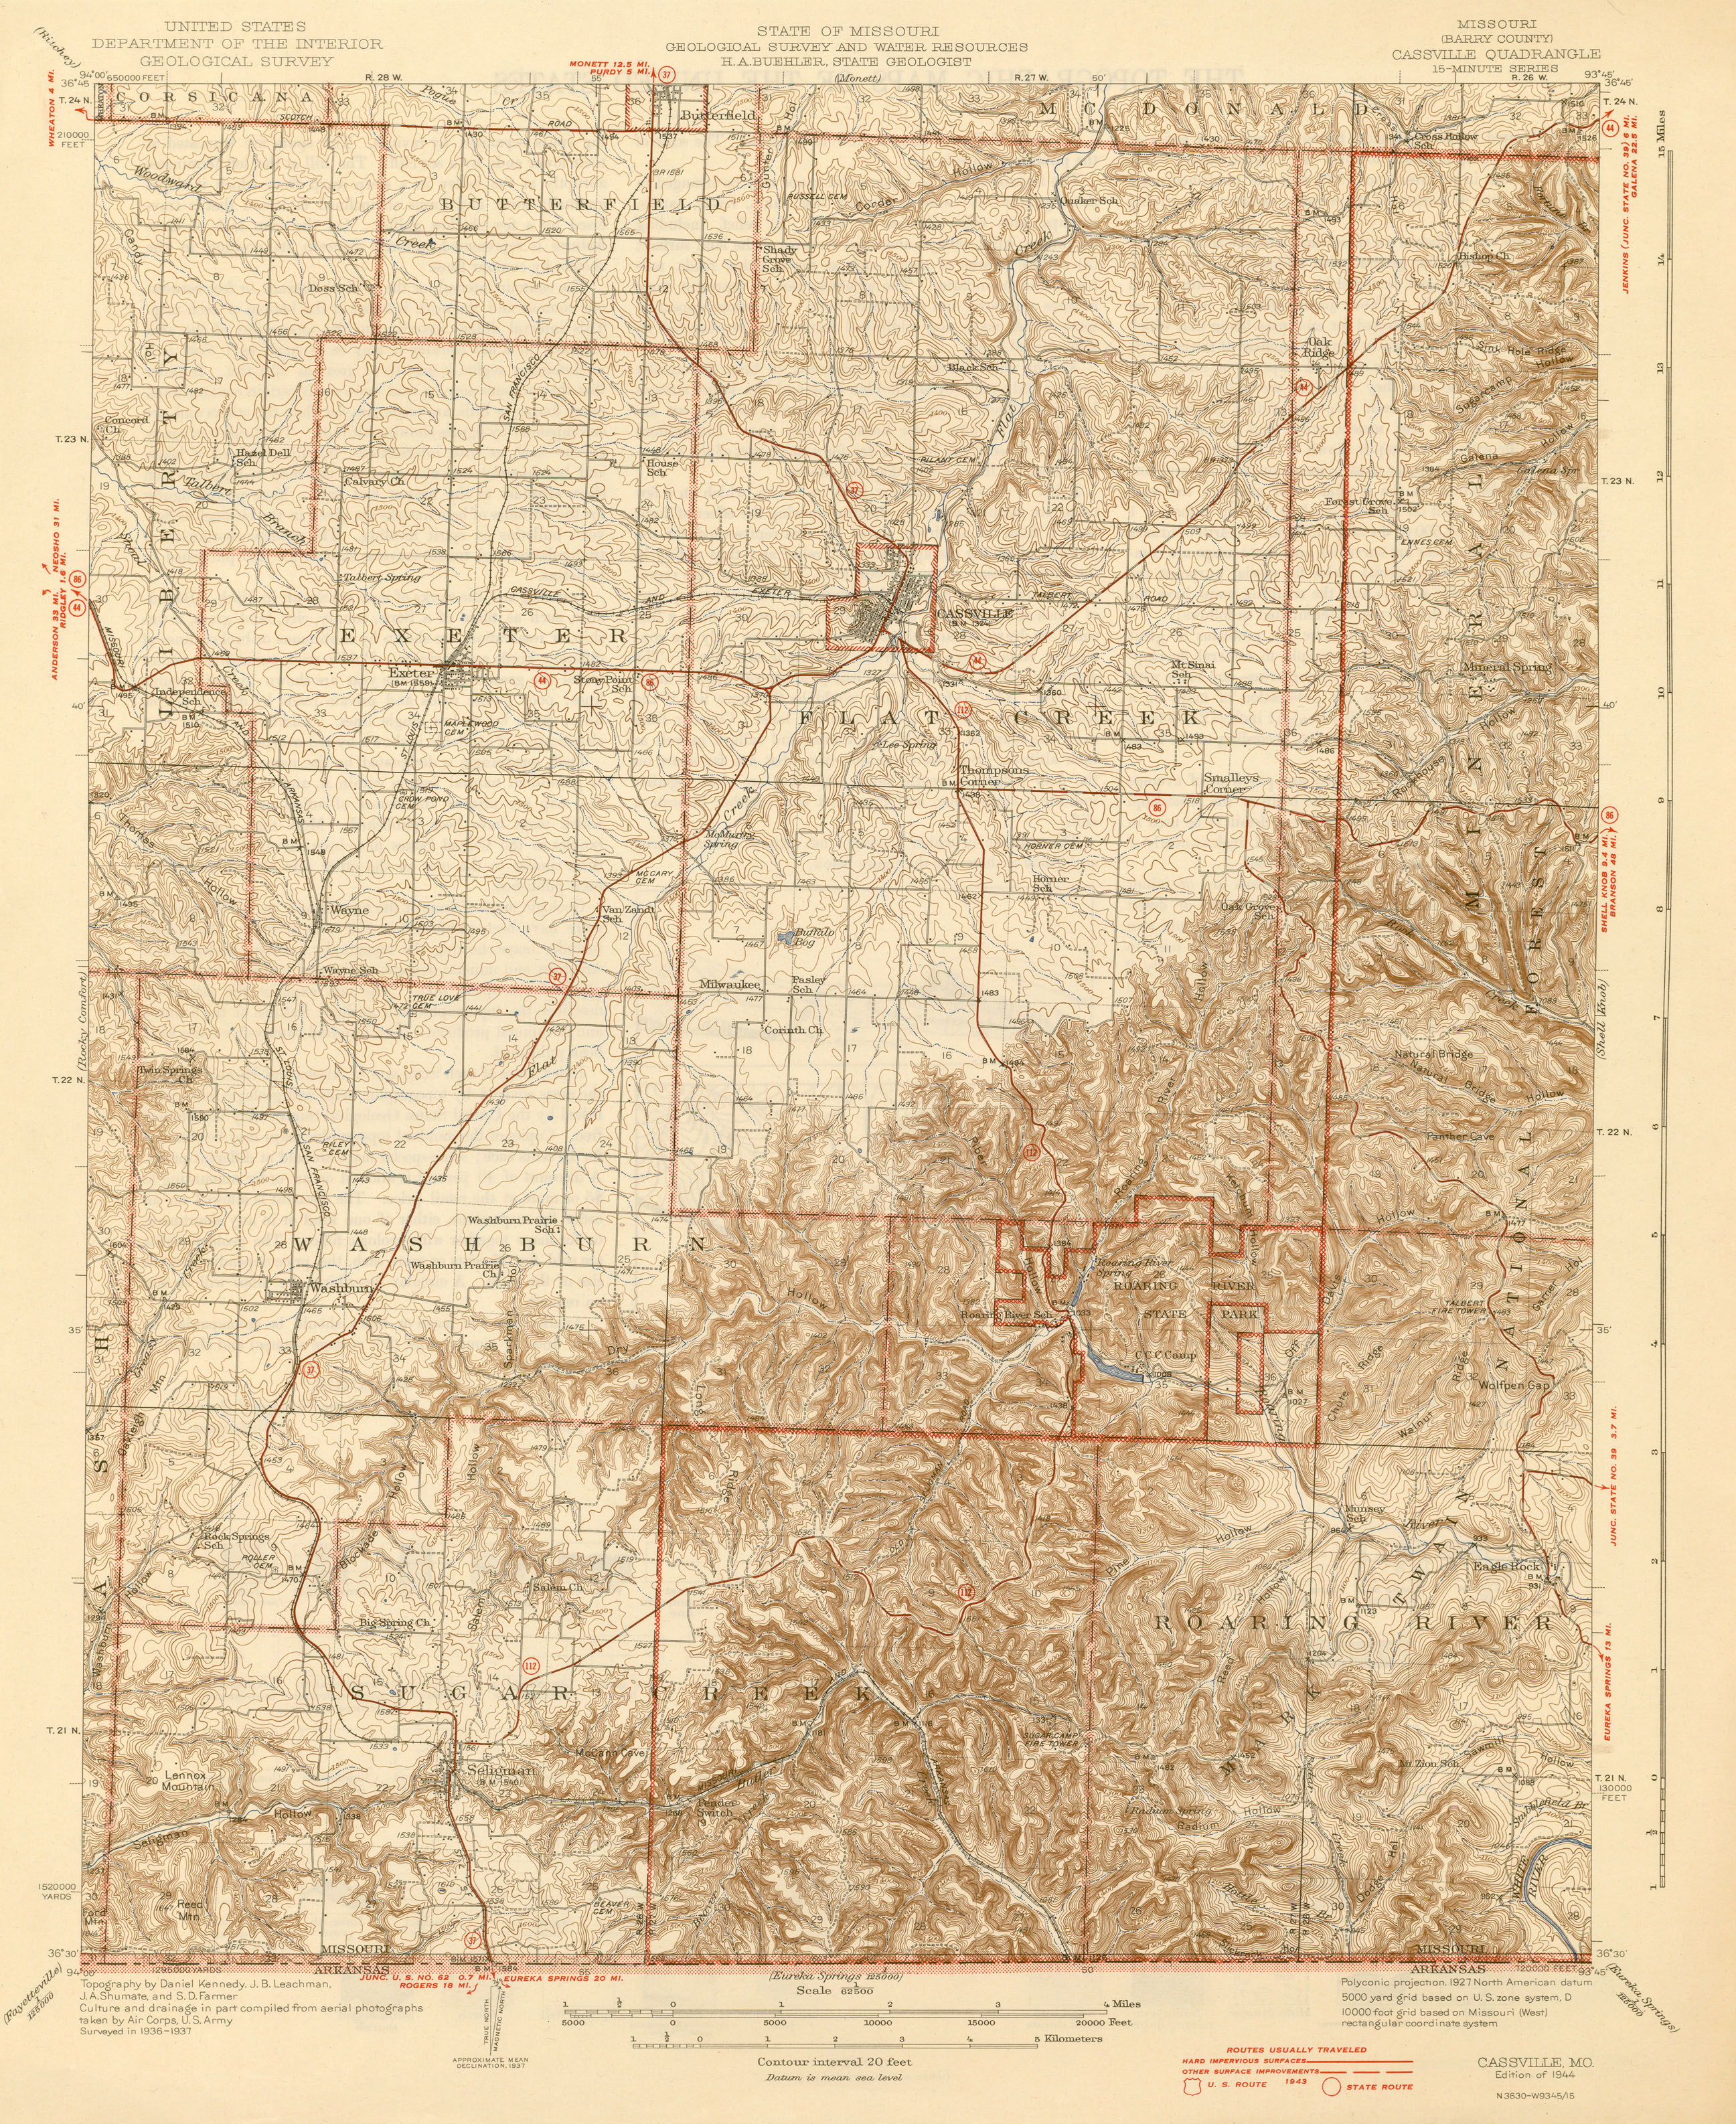 Missouri Historical Topographic Maps - Perry-Castañeda Map ...